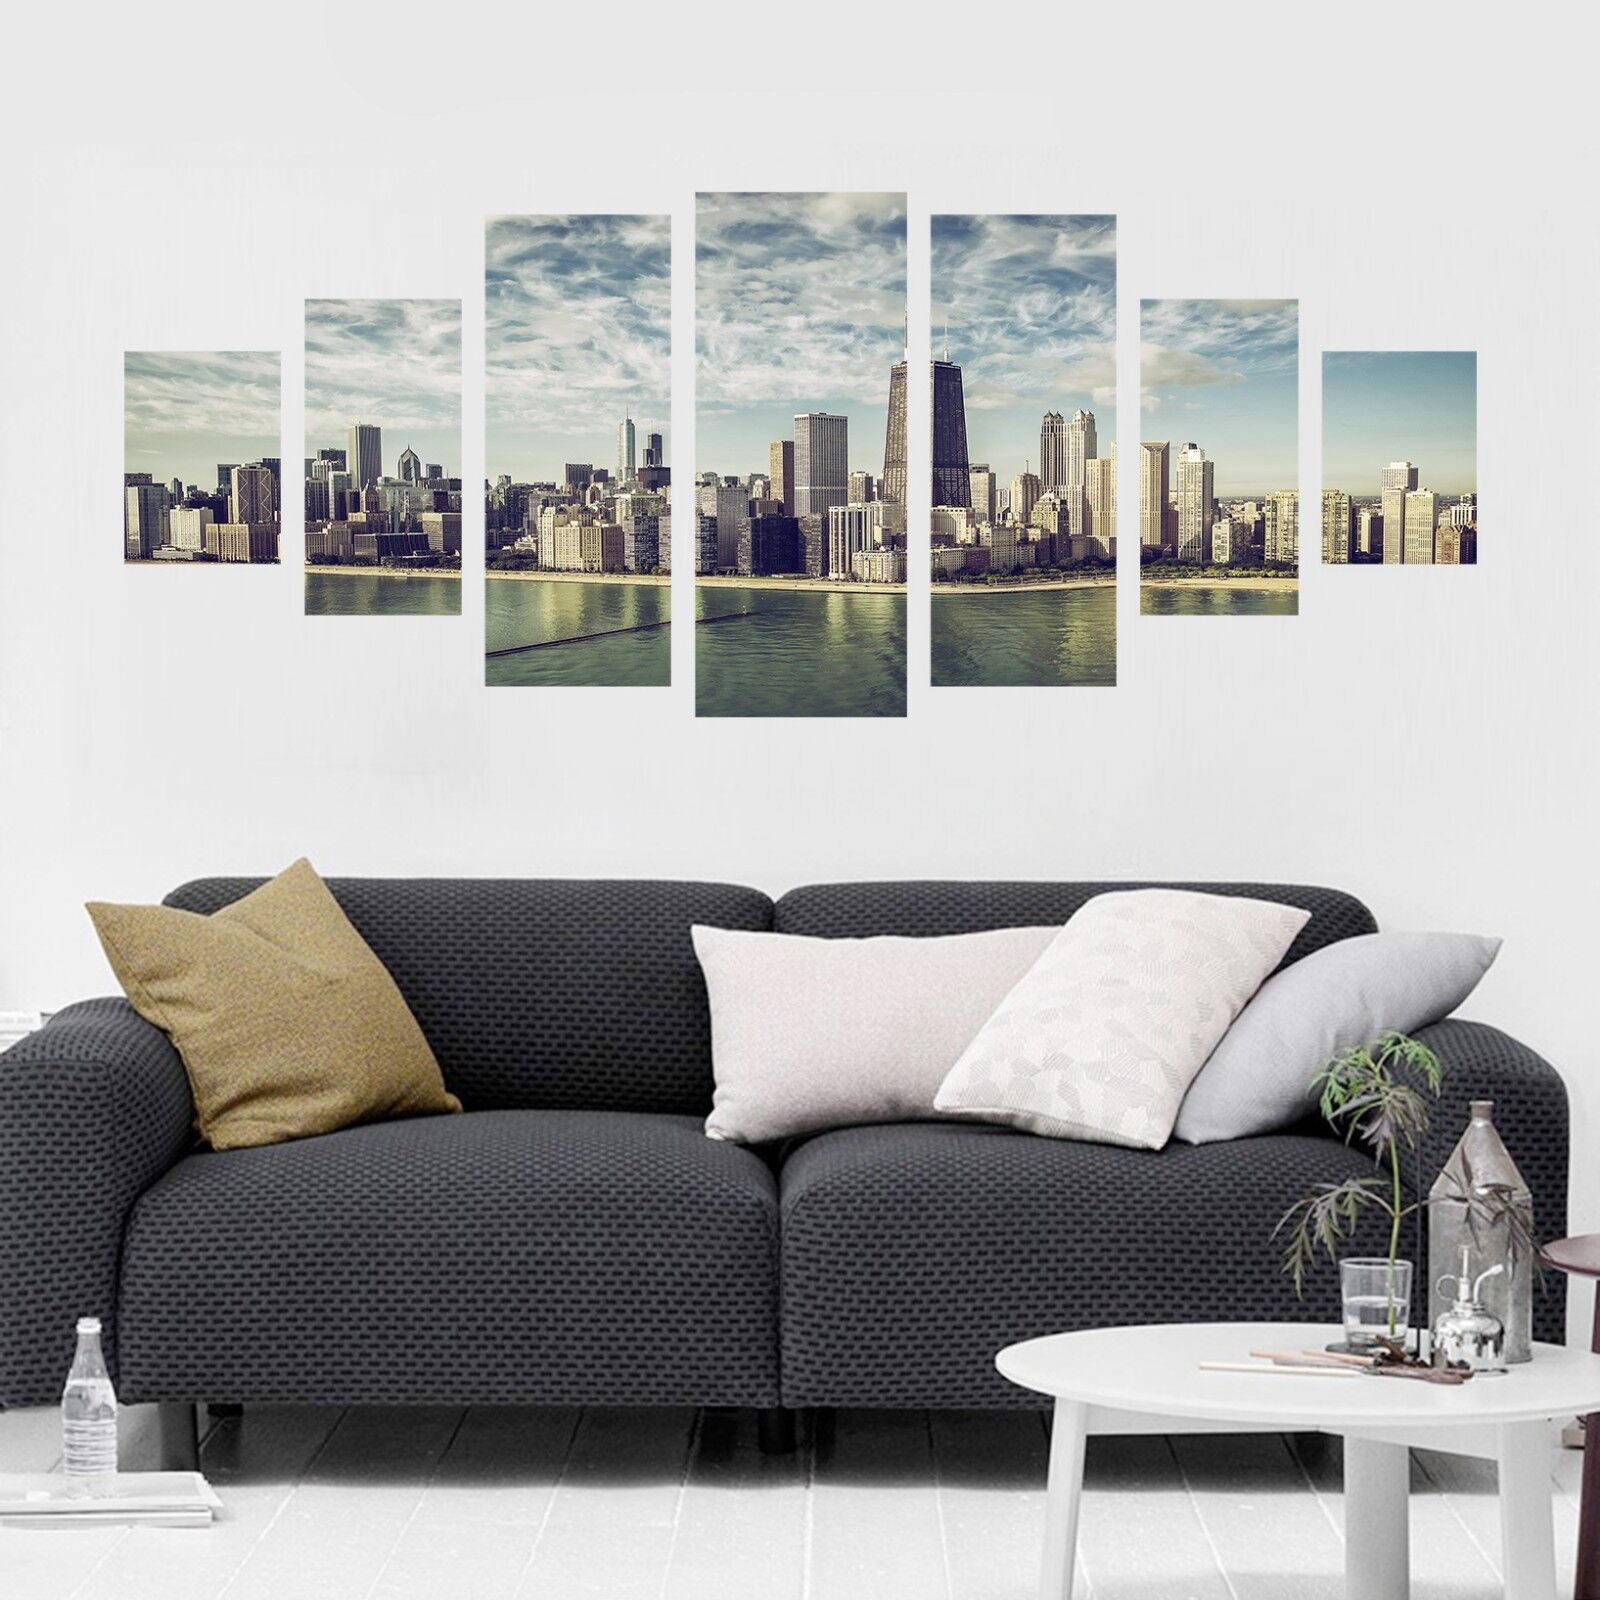 3D City River 58 Unframed Print Wall Paper Decal Wall Deco Indoor AJ Wall